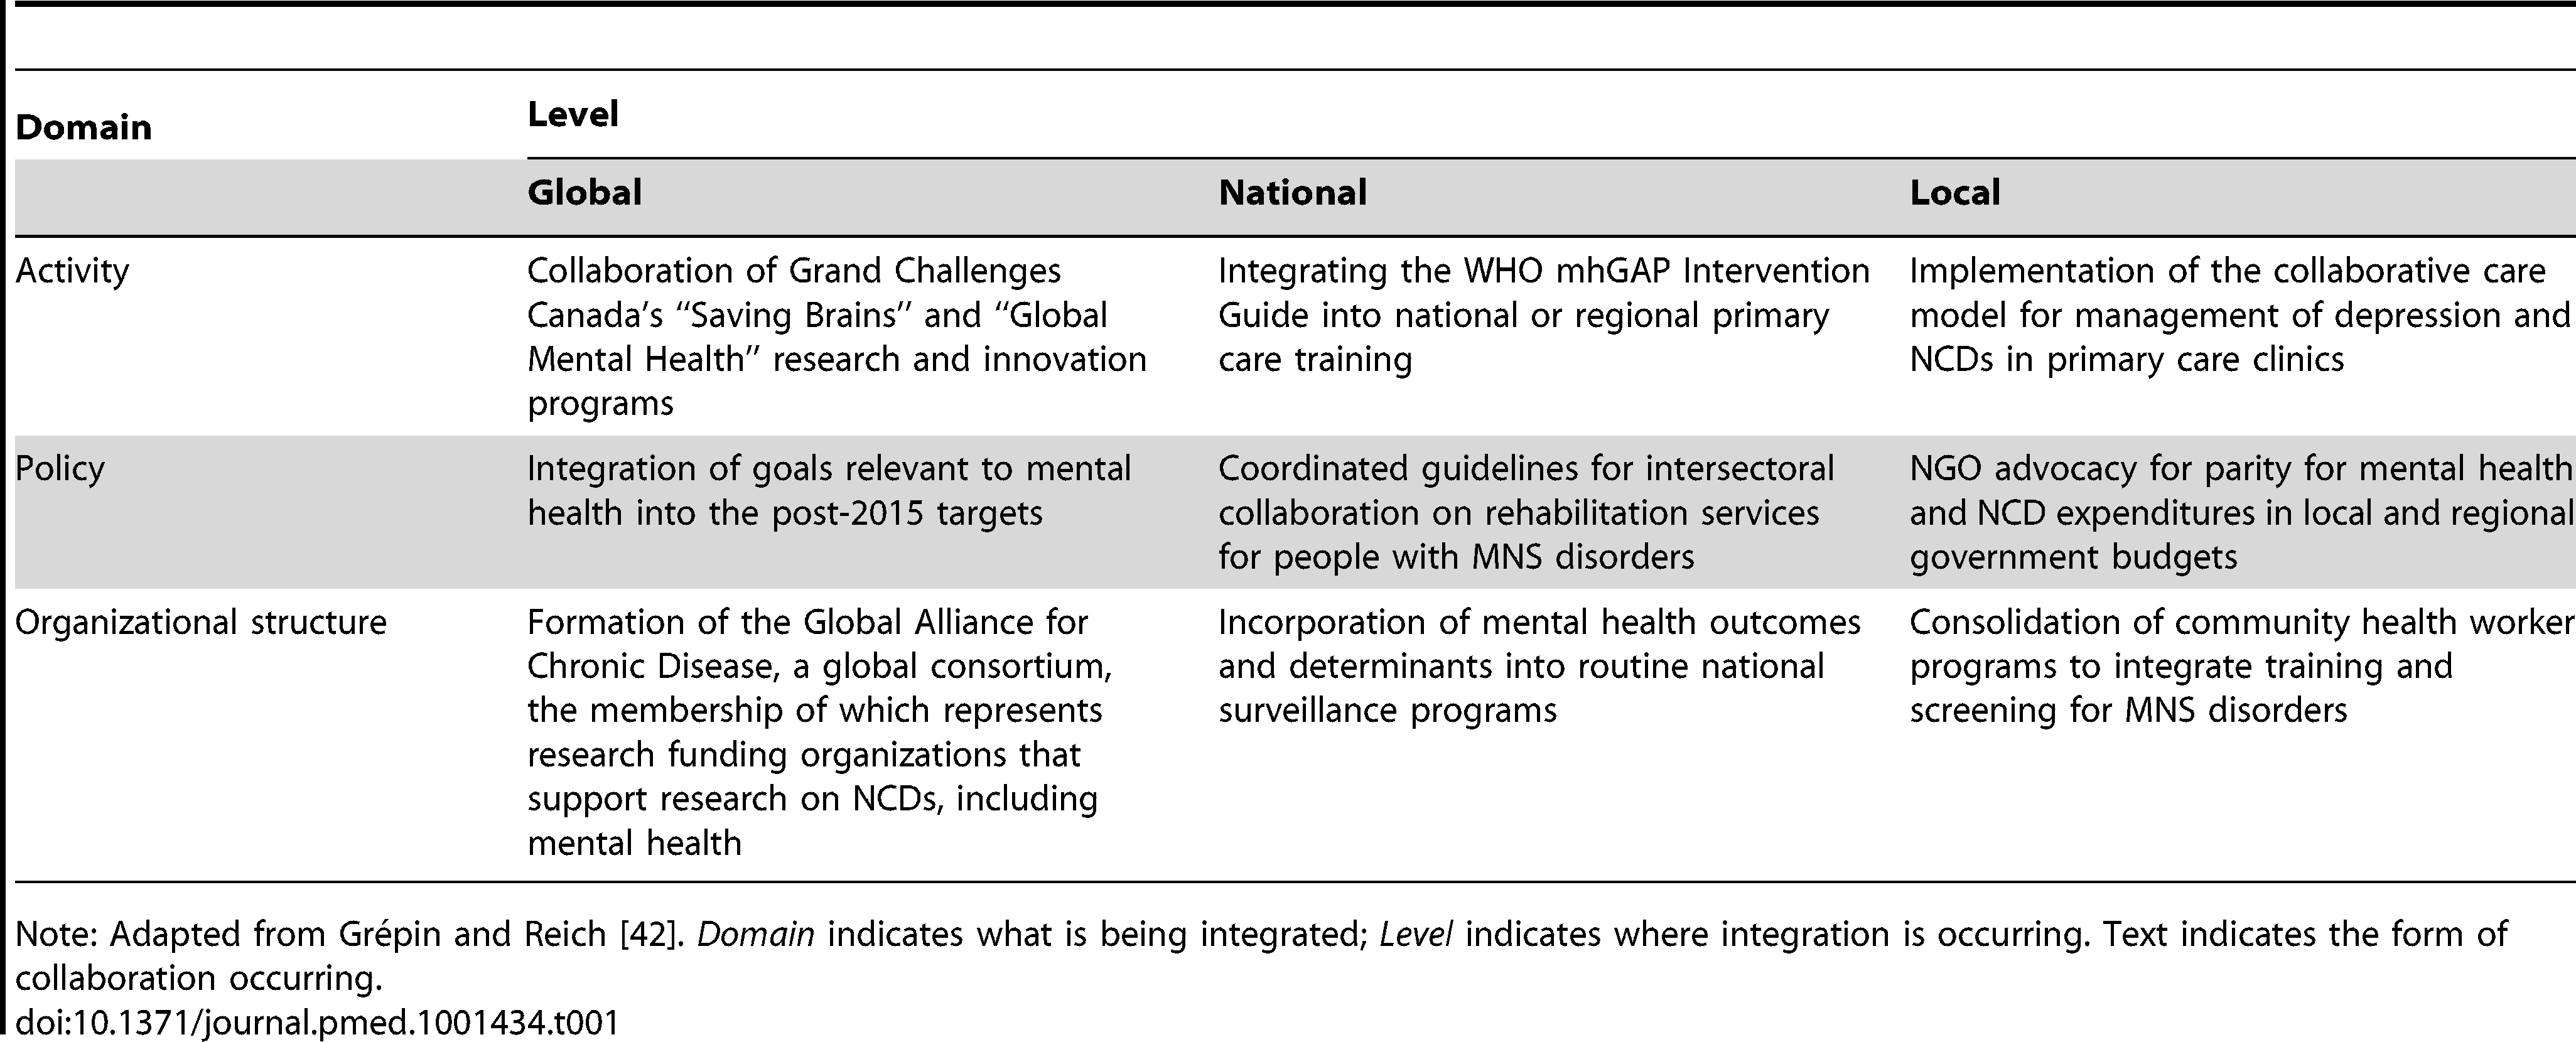 Operationalizing integration: Examples of activity, policy, and organizational integration that link MNS research and care to other health-related programs.